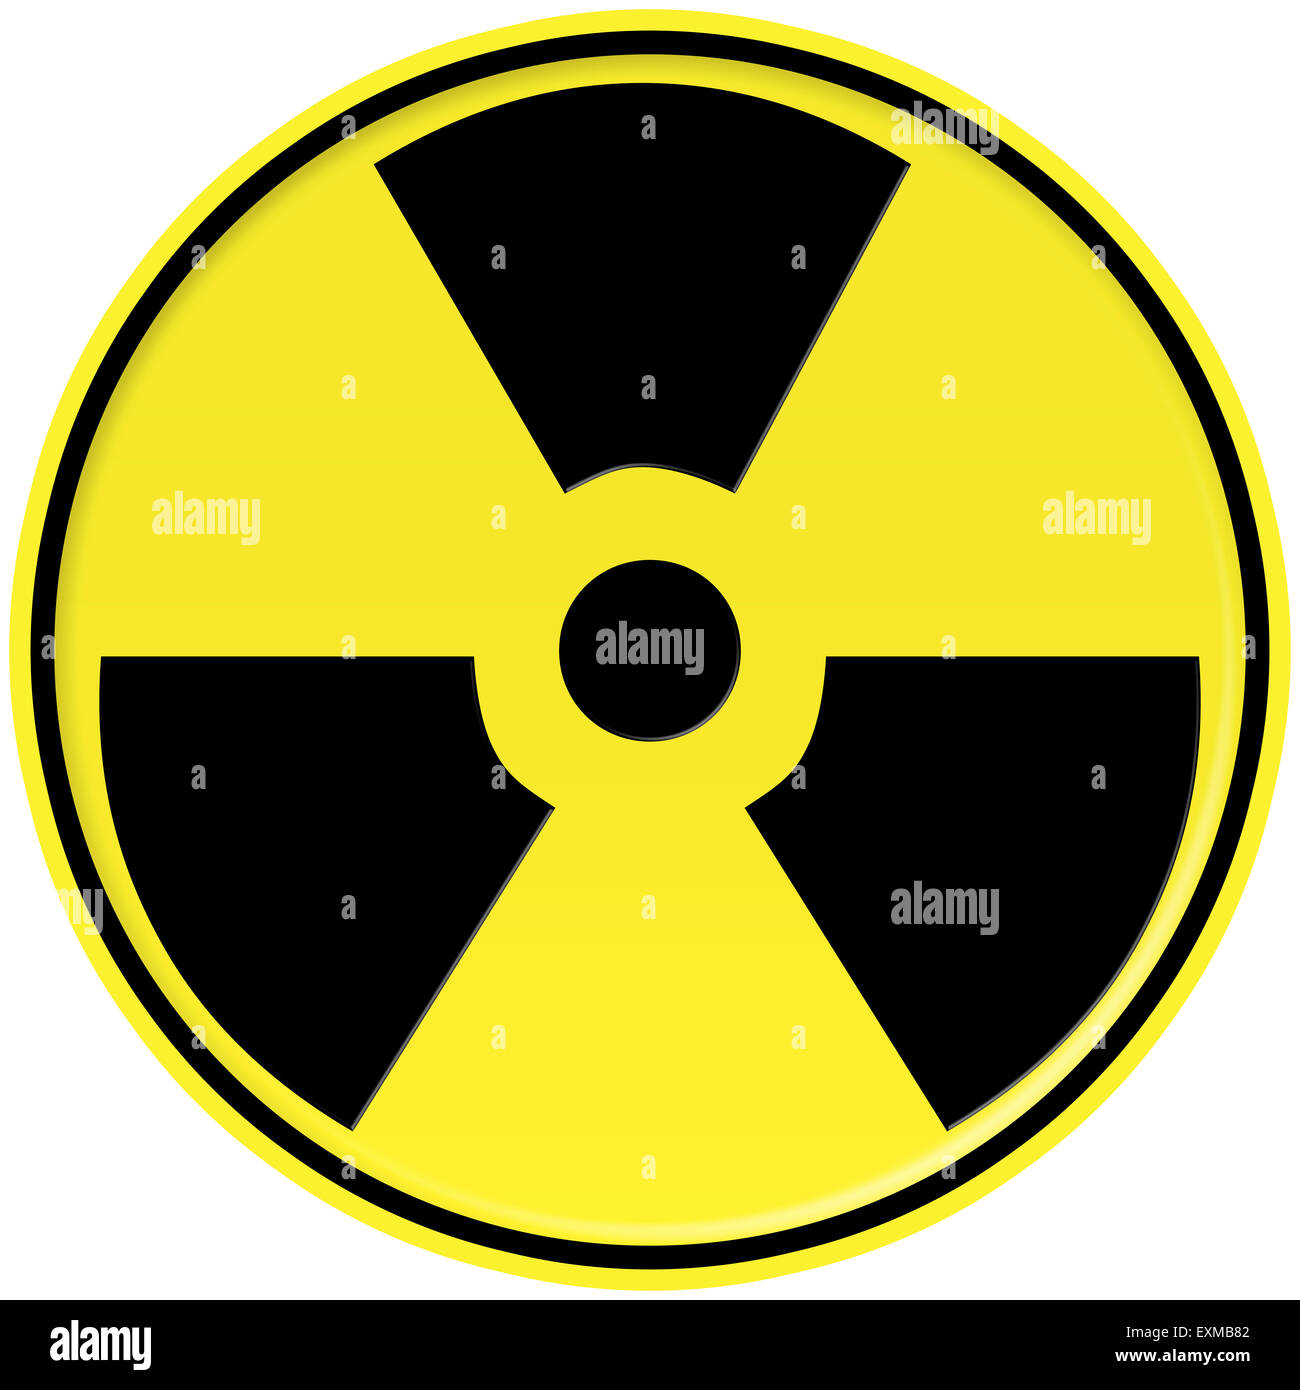 Yellow and black Nuclear icon - Stock Image